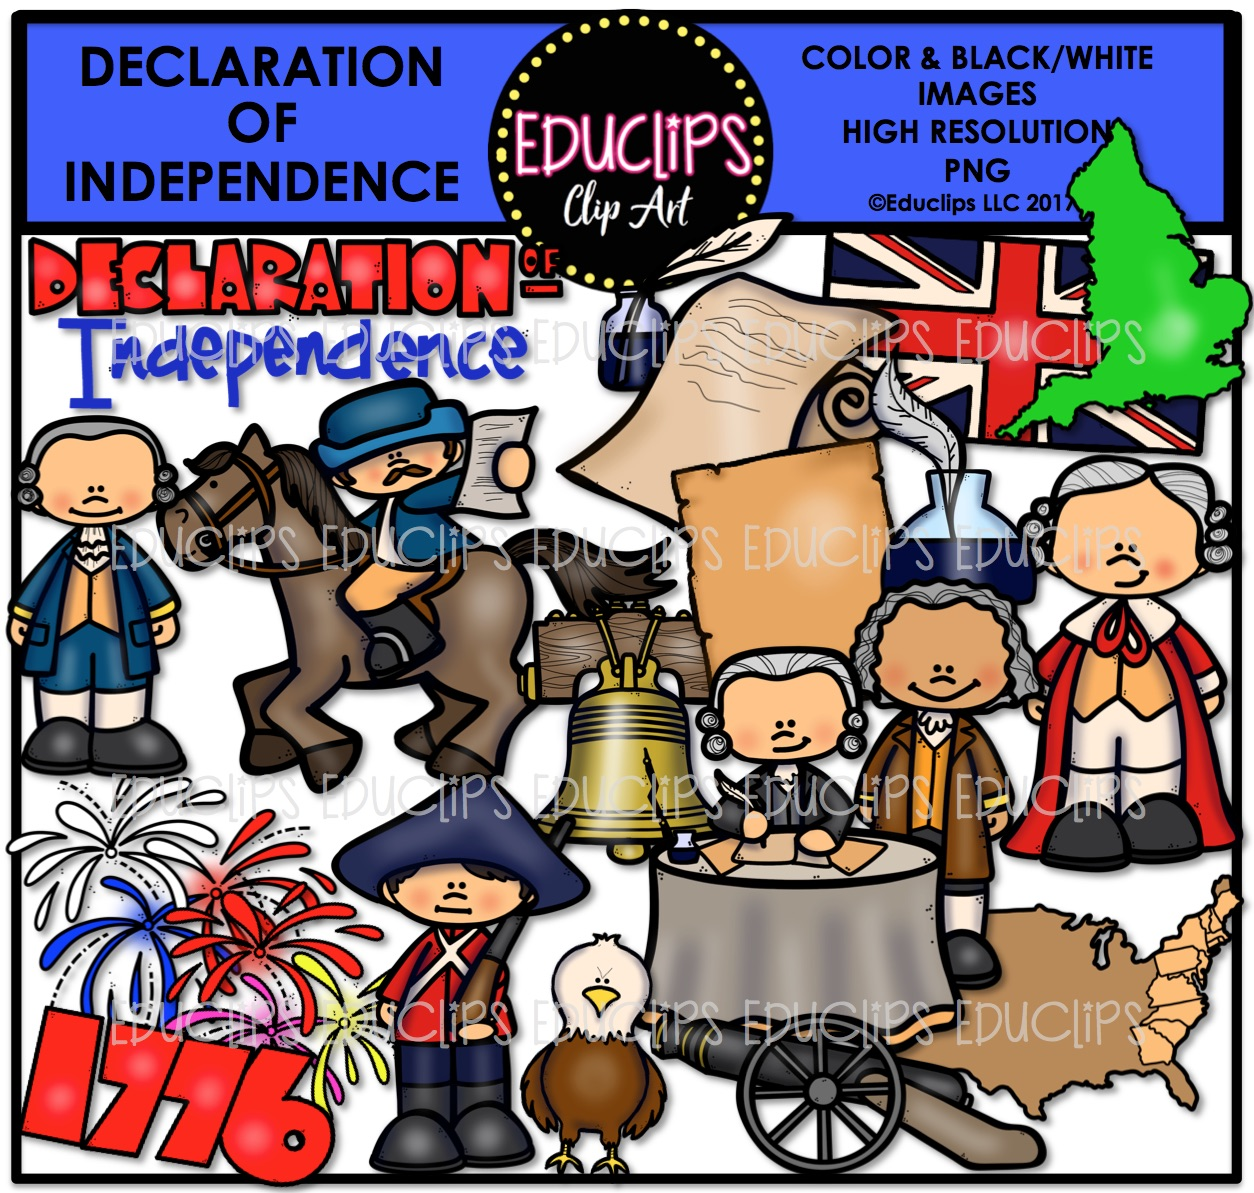 Declaration Of Independence clipart historical fiction And Art  Declaration Independence